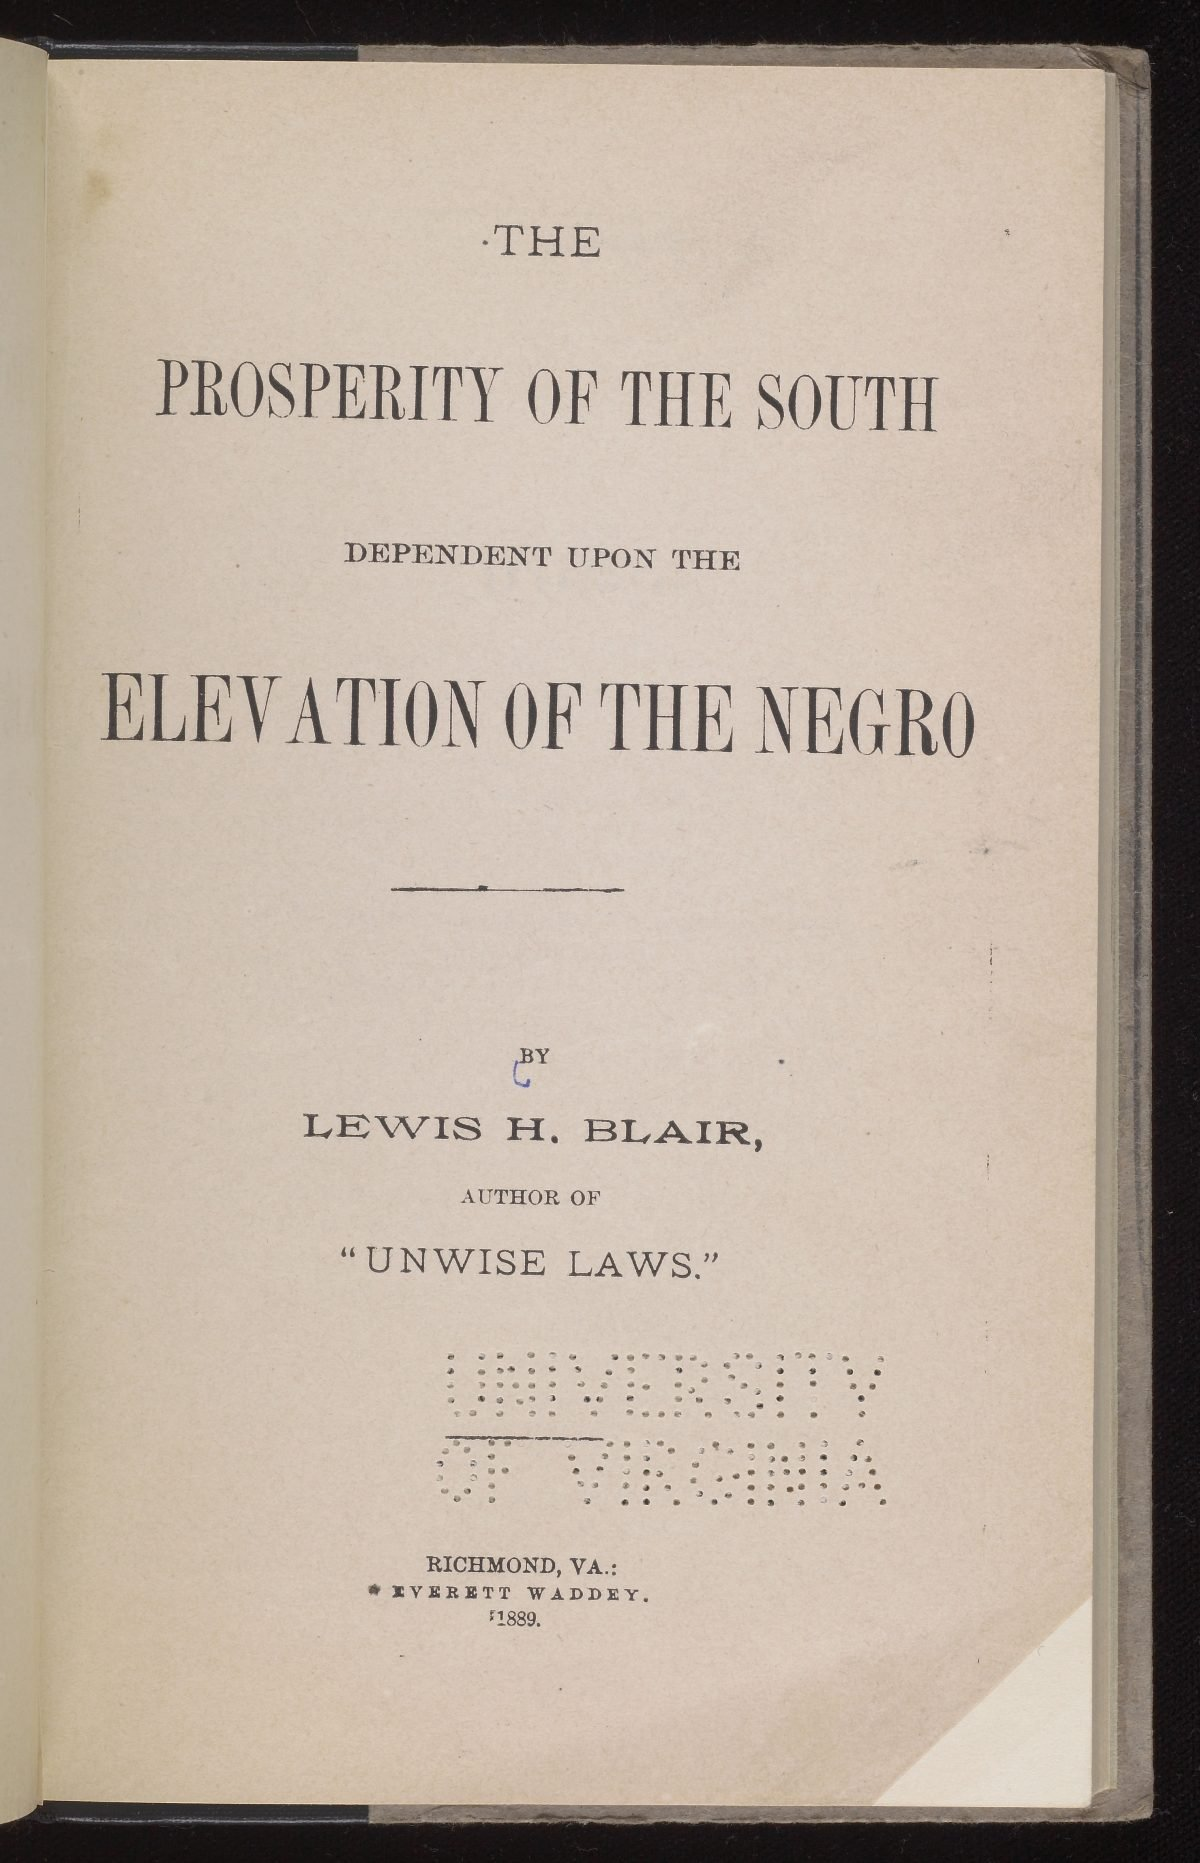 The Prosperity of the South Dependent Upon the Elevation of the Negro